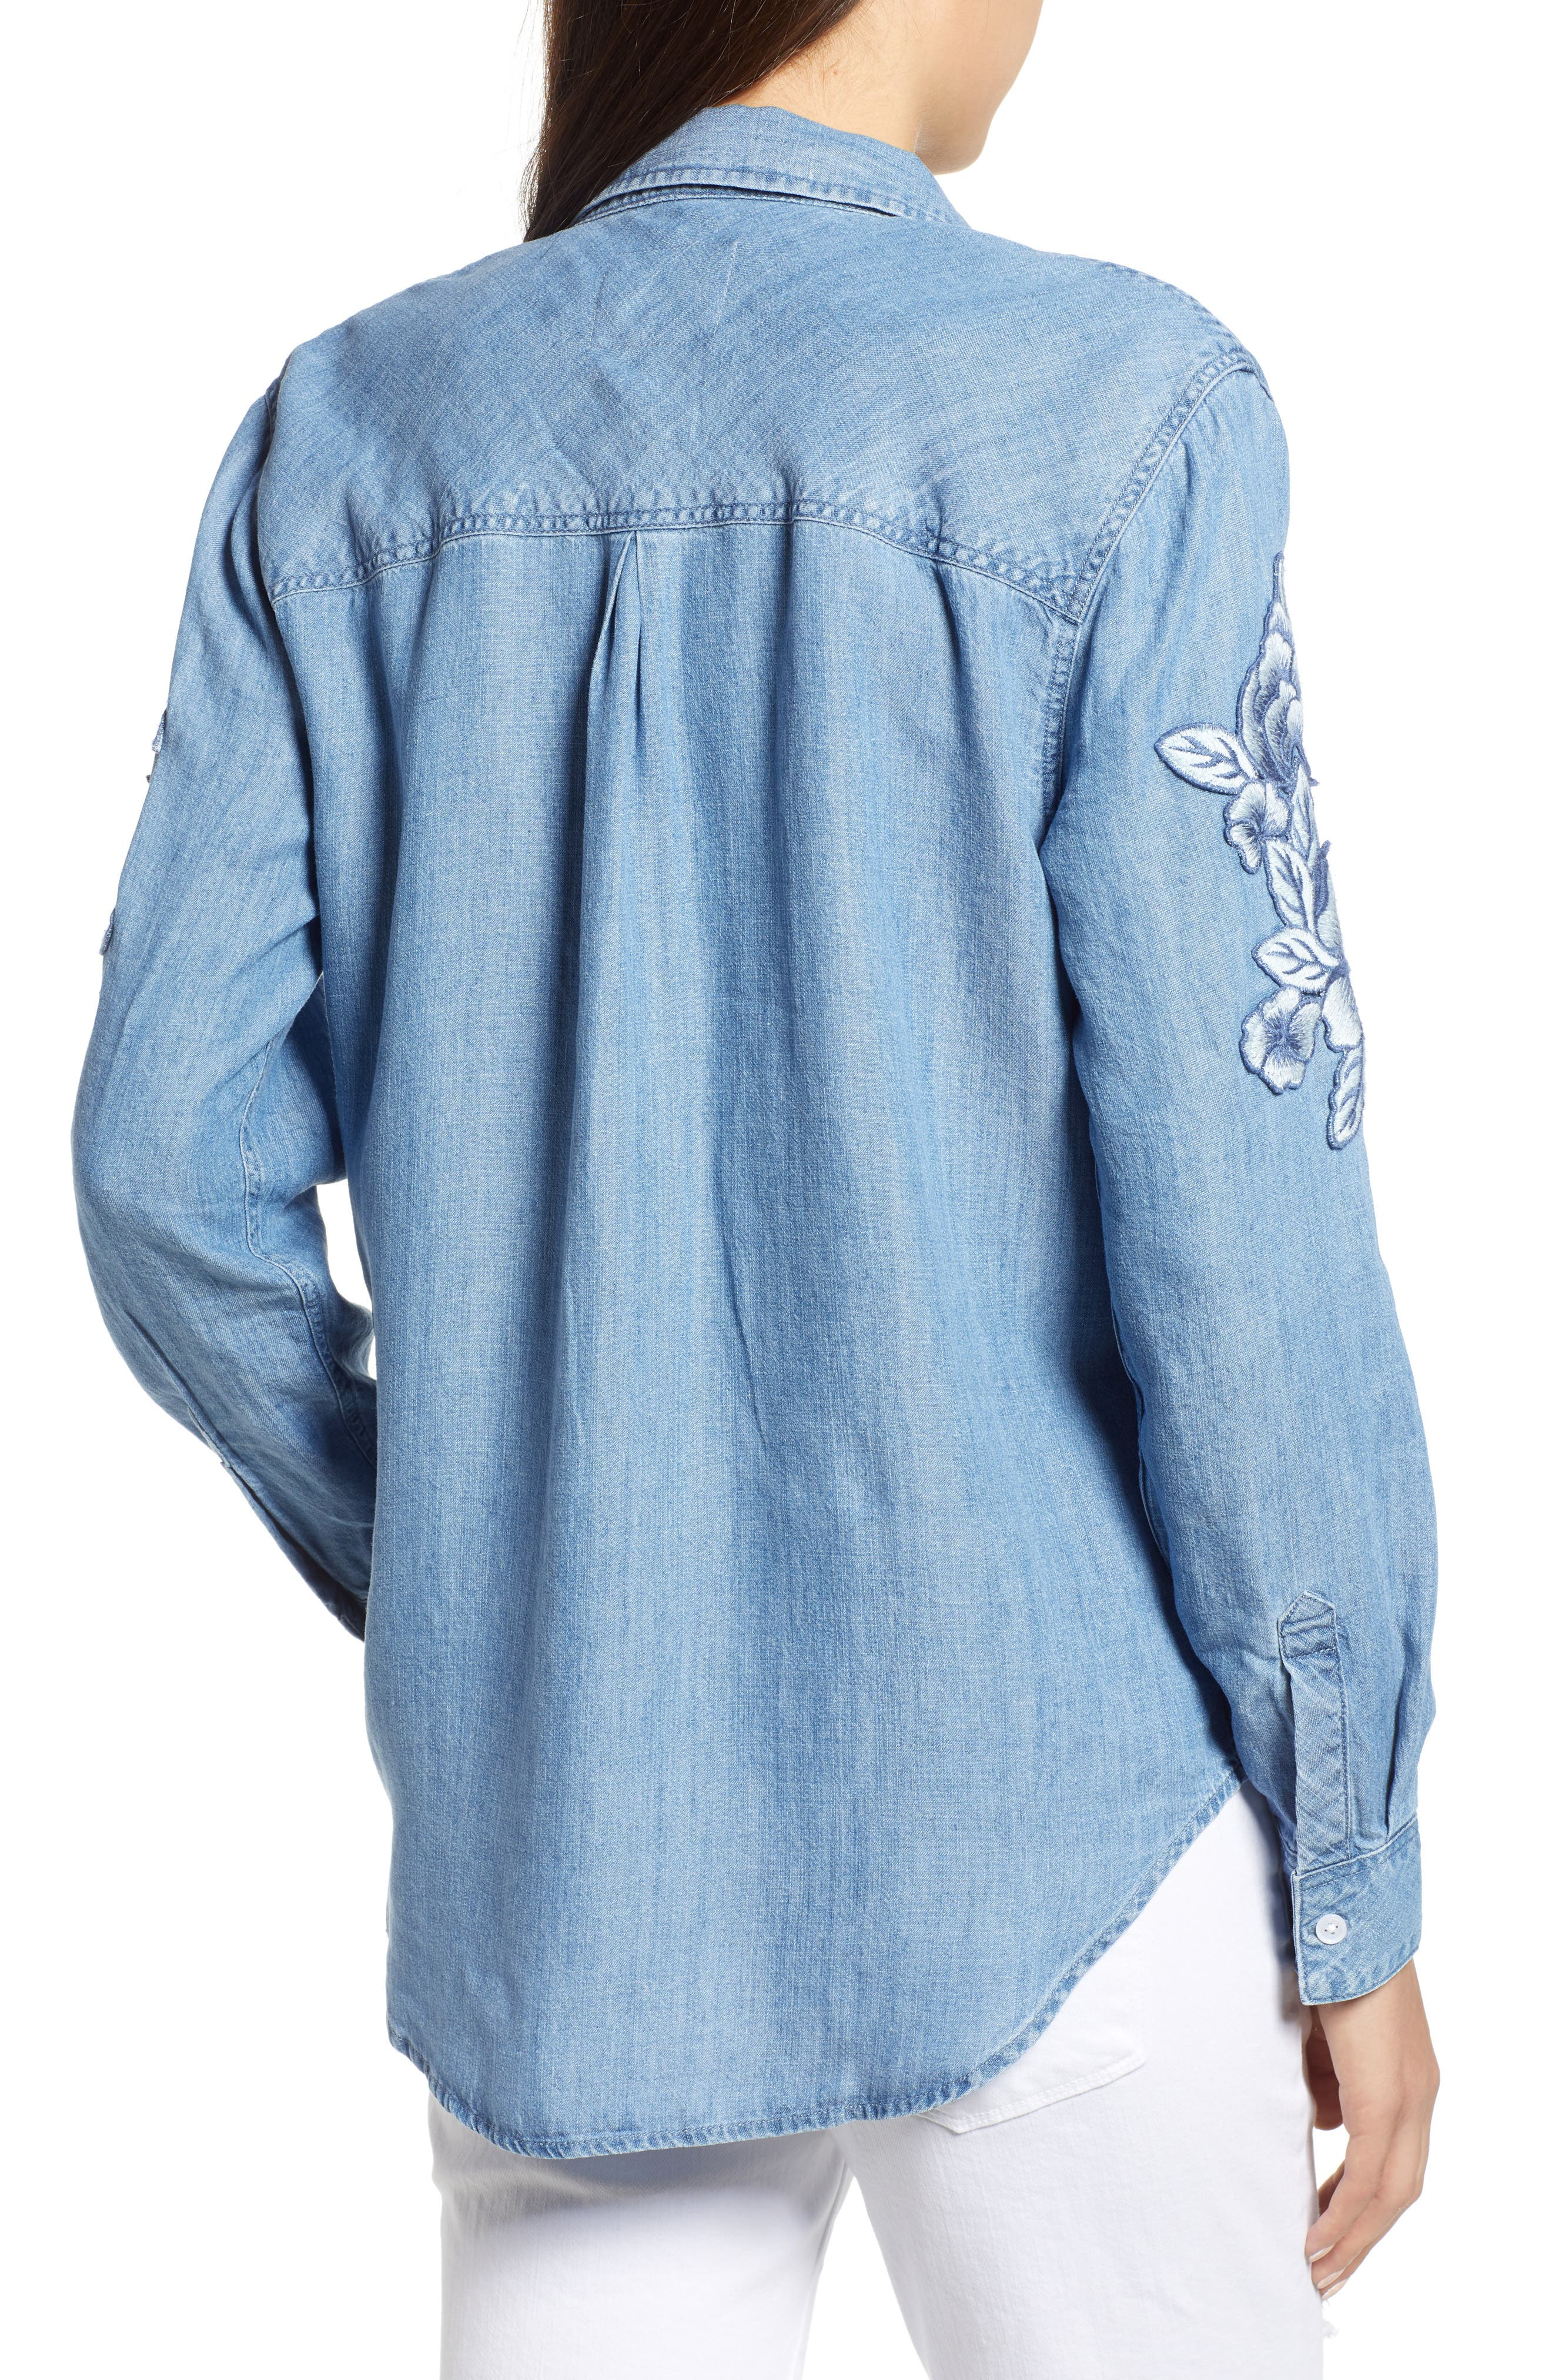 Ingrid Embroidered Chambray Shirt,                             Alternate thumbnail 2, color,                             Medium Vintage W/ White Floral